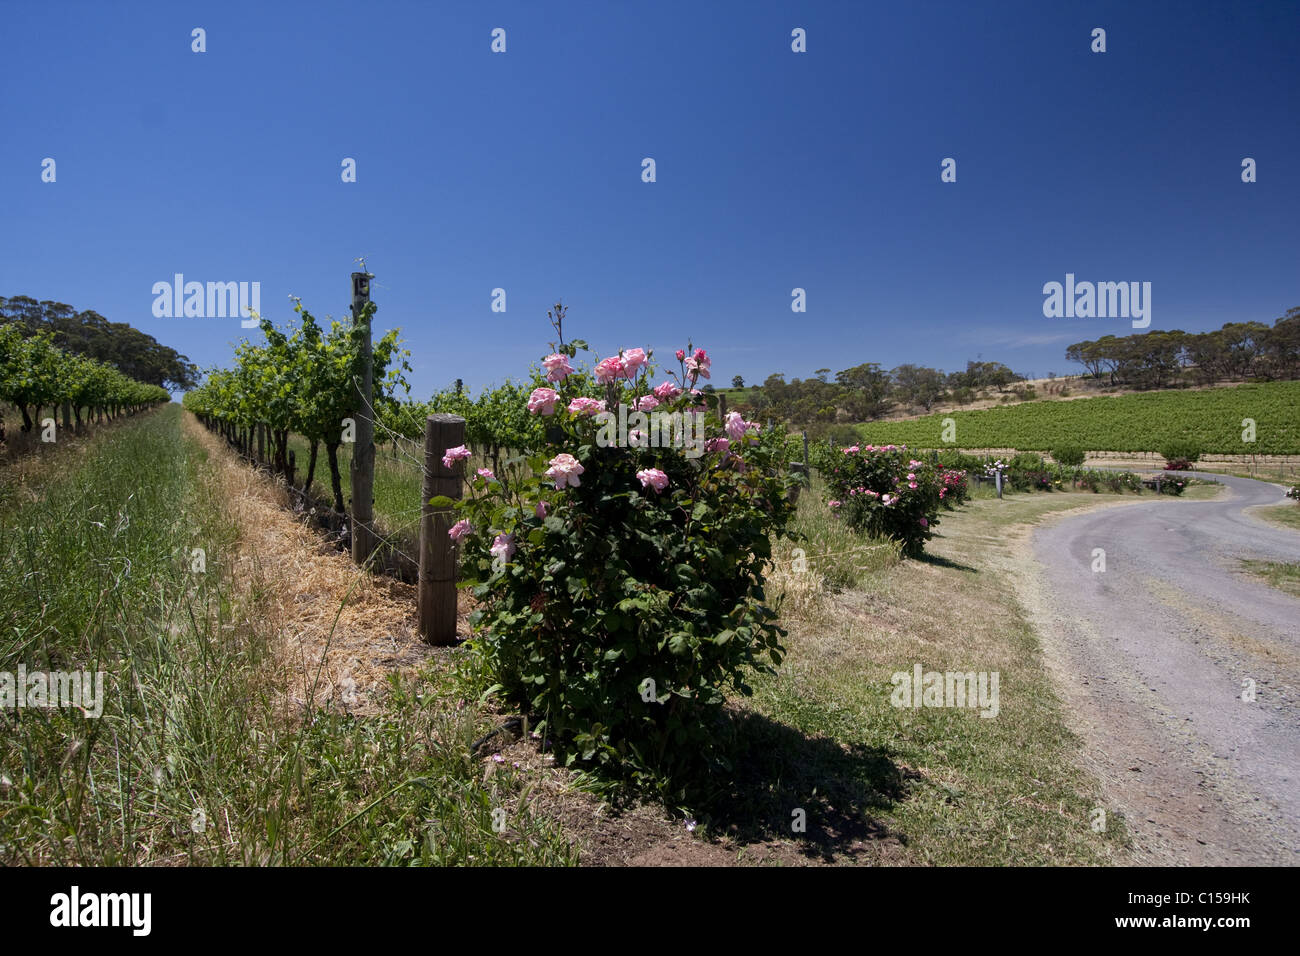 Rows of young grapevines growing in a vineyard in the McLaren Vale wine growing area of South Australia. Stock Photo